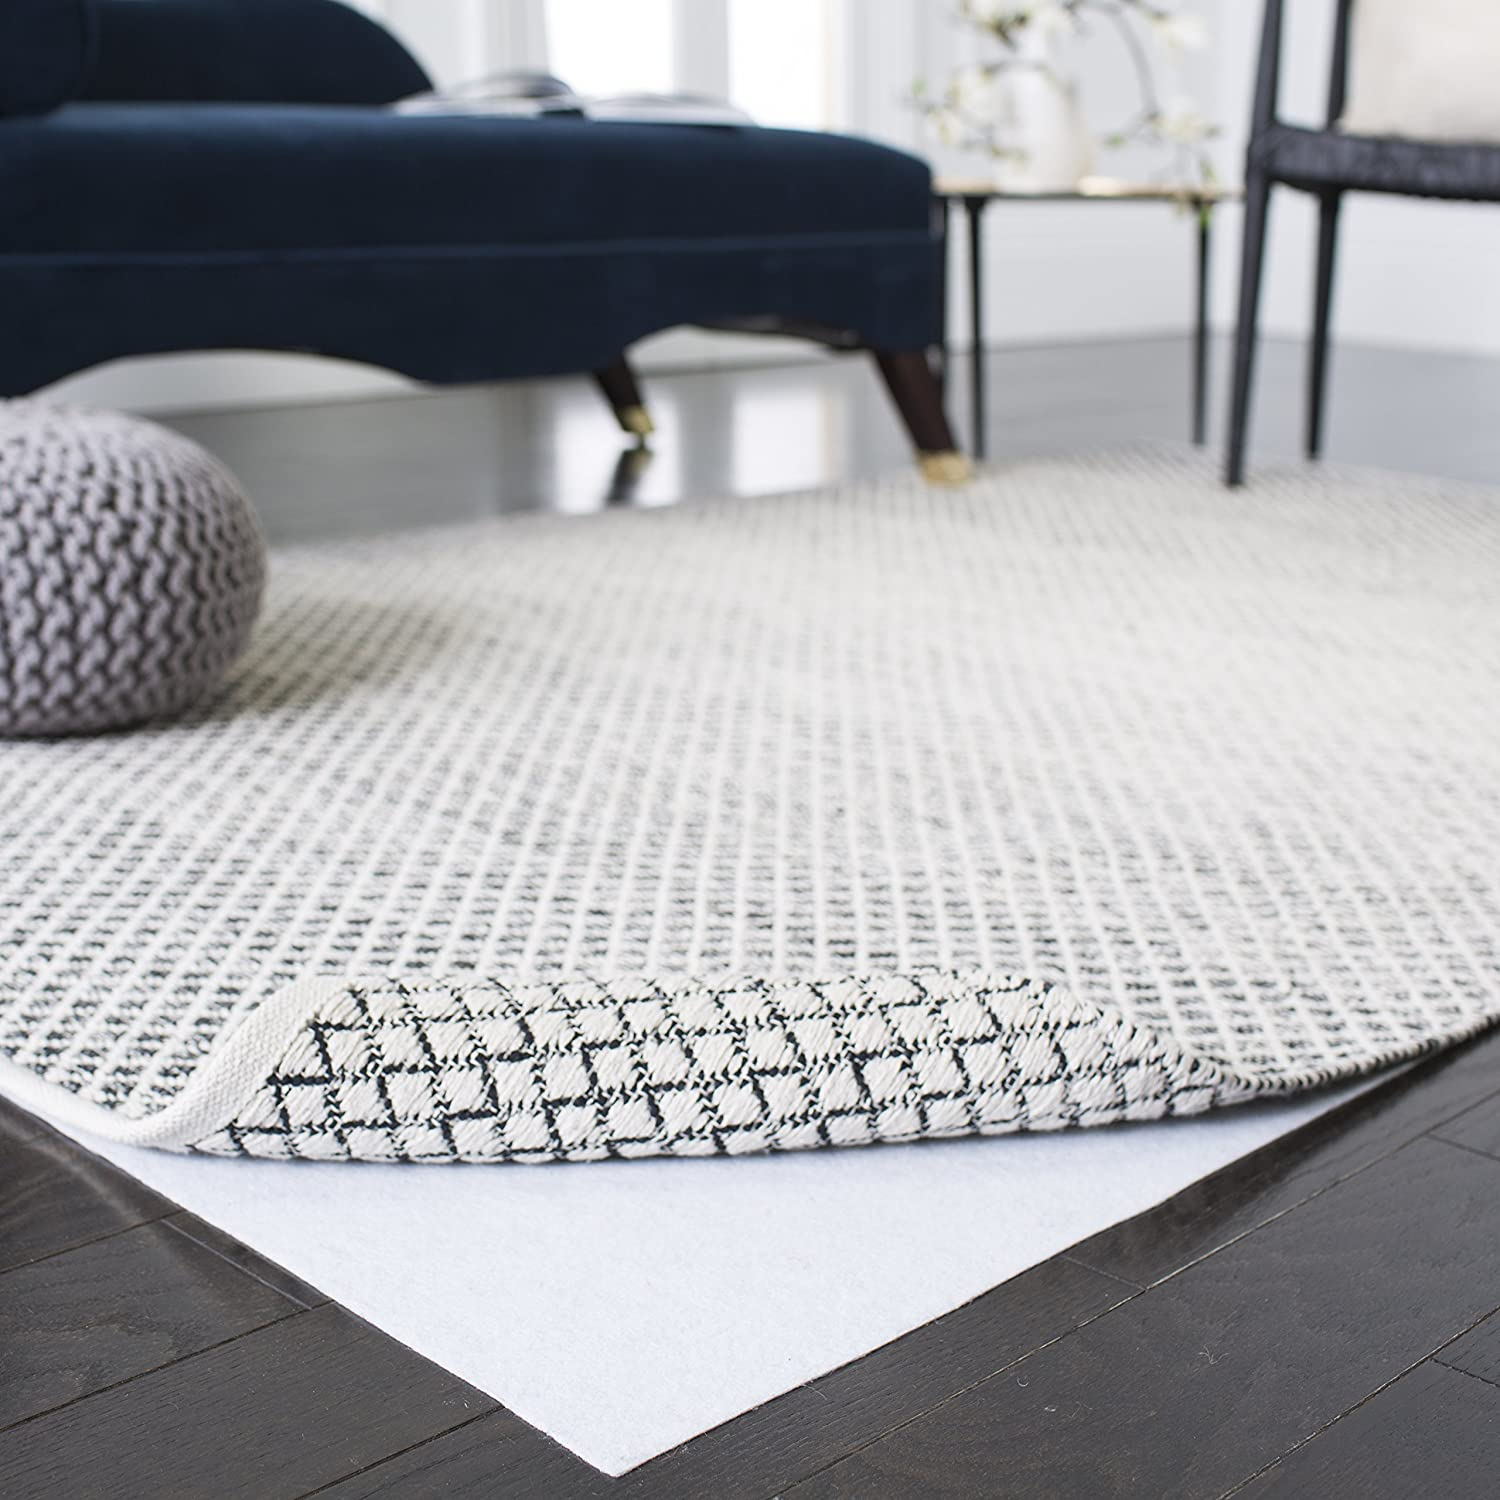 Safavieh Carpet-to-Carpet Non-Slip Rug Pad (PAD125-4)